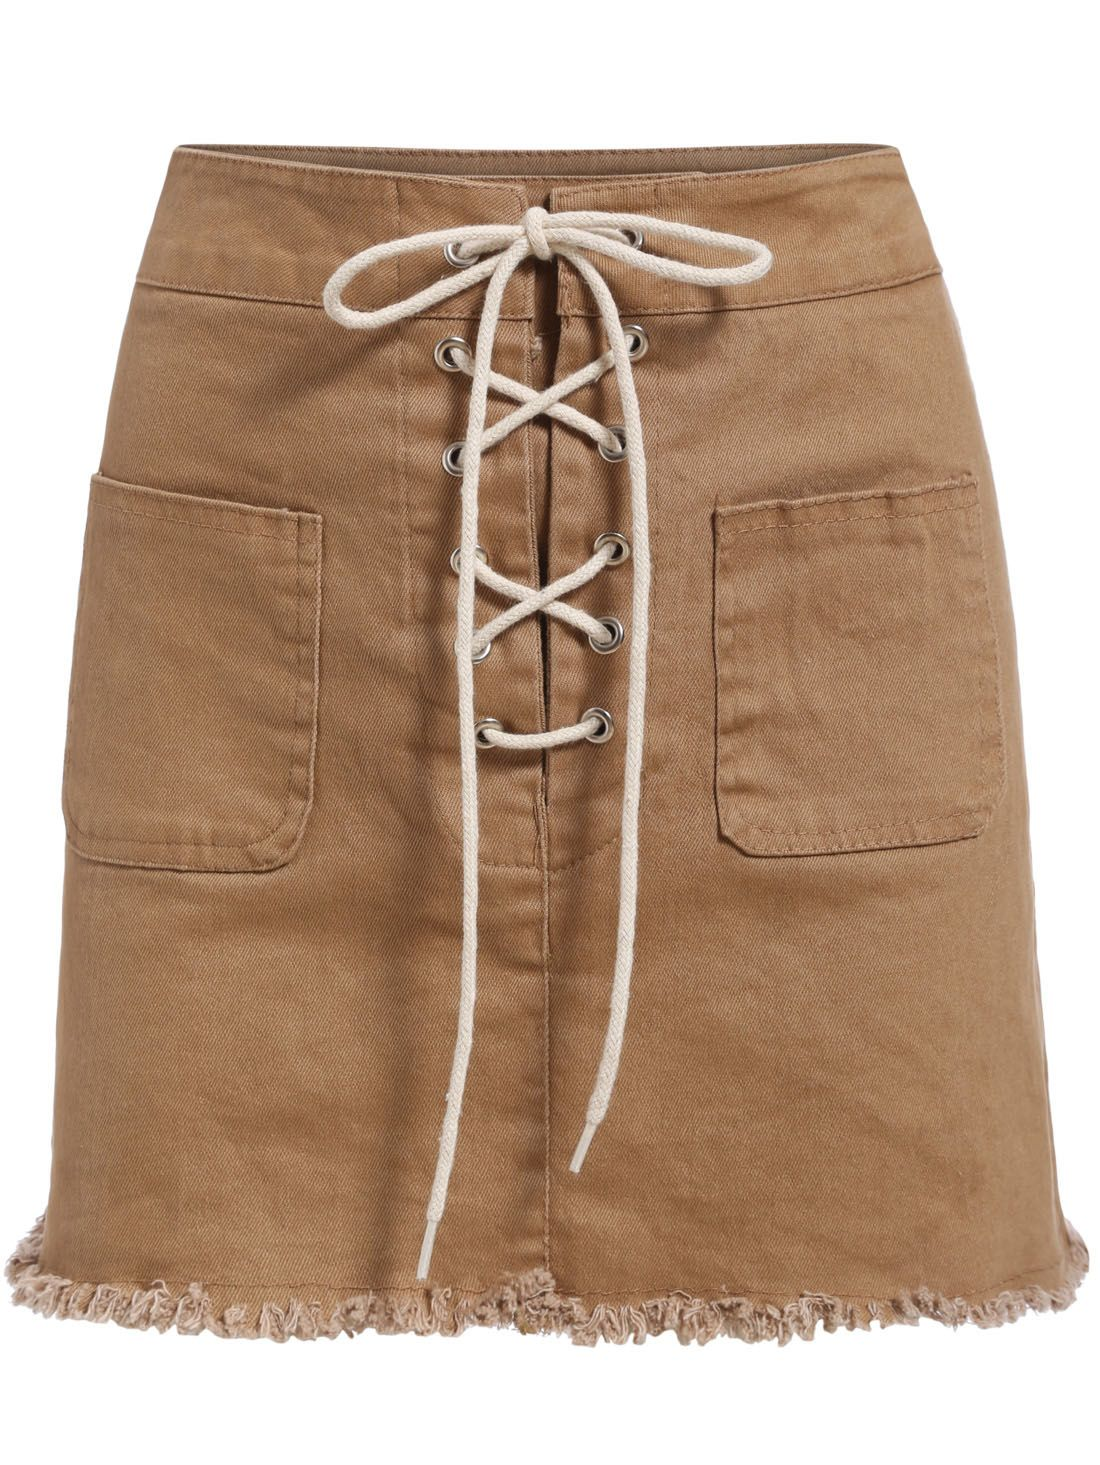 Shop Khaki Bandage Fringe Denim Skirt online. SheIn offers Khaki Bandage Fringe Denim Skirt & more to fit your fashionable needs.